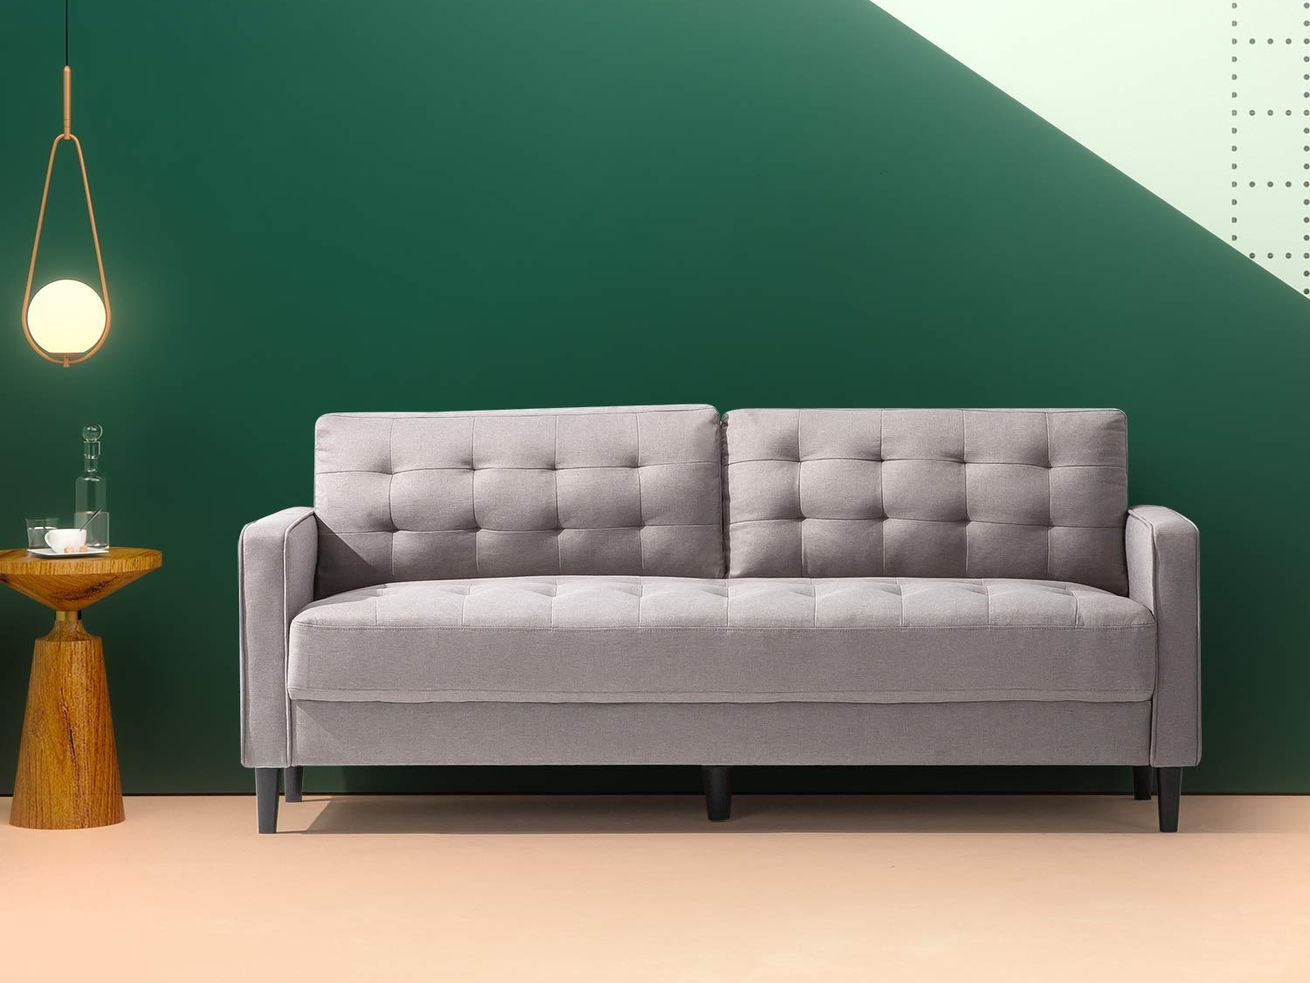 """This <a class=""""ql-link"""" href=""""https://amzn.to/2DweItZ"""" target=""""_blank"""" data-author=""""-1""""> midcentury-style sofa</a> is on sale for <span data-author=""""-1"""">$279.99 (usually $429)</span> ."""